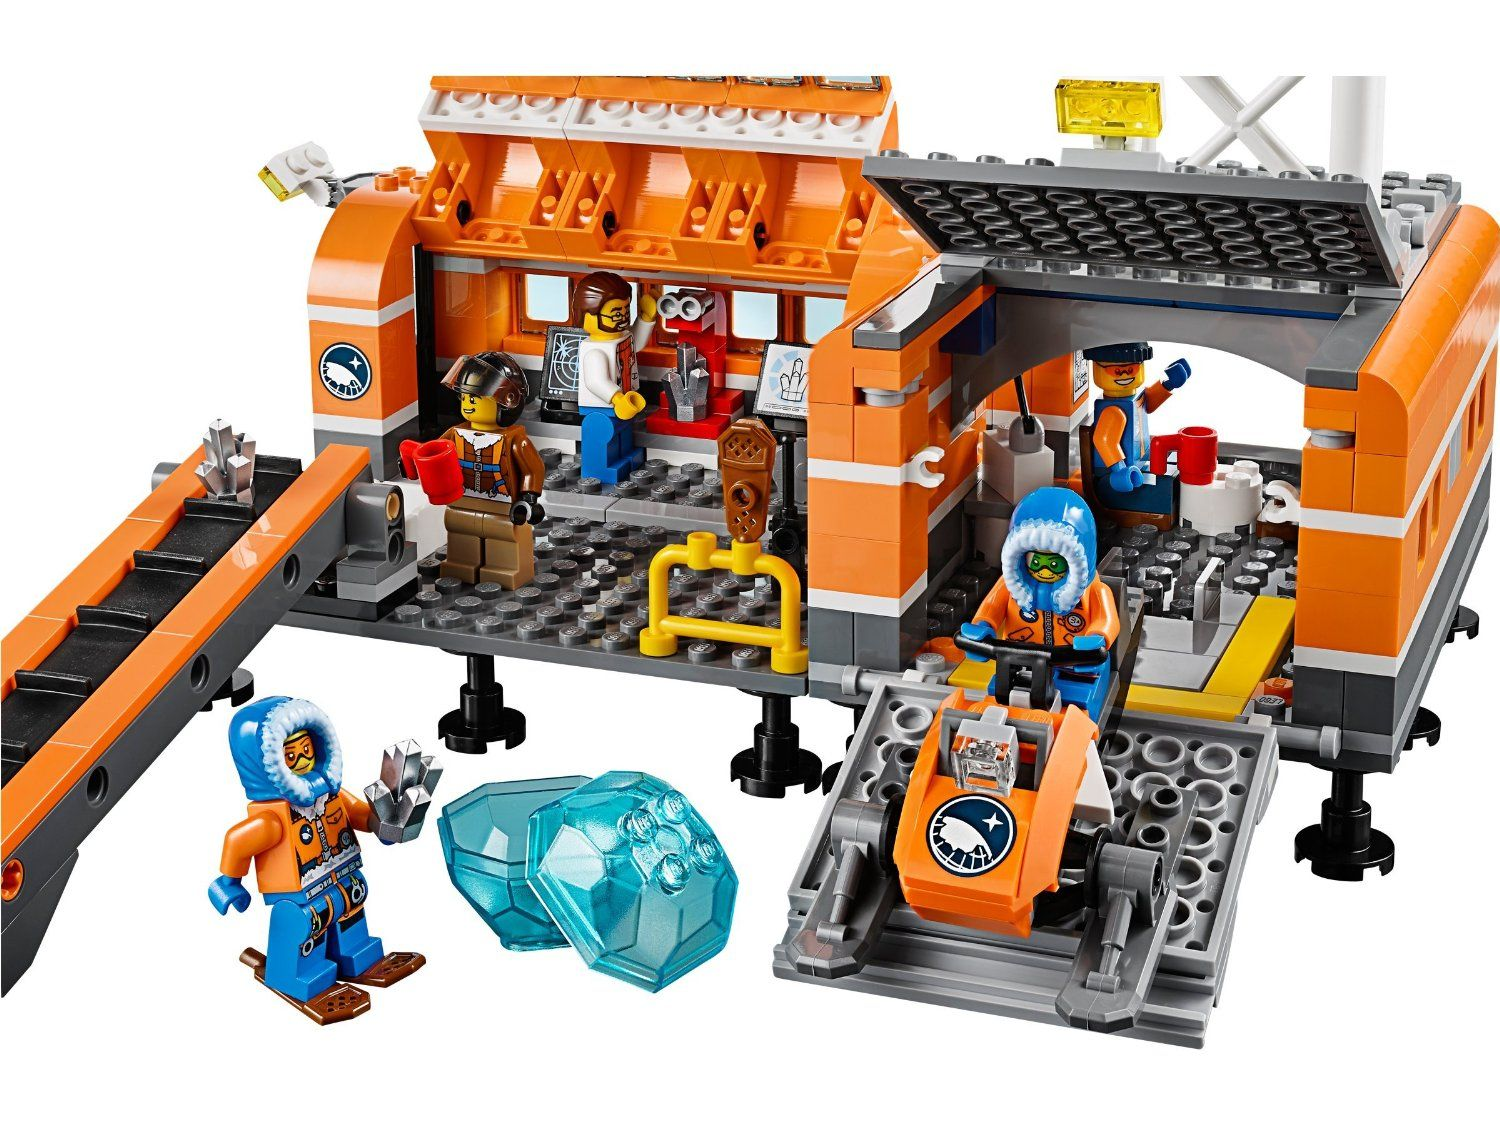 Pin lego 60032 city the lego summer wave in official images on - Lego City 60036 Arctic Base Camp Lego Amazon Co Uk